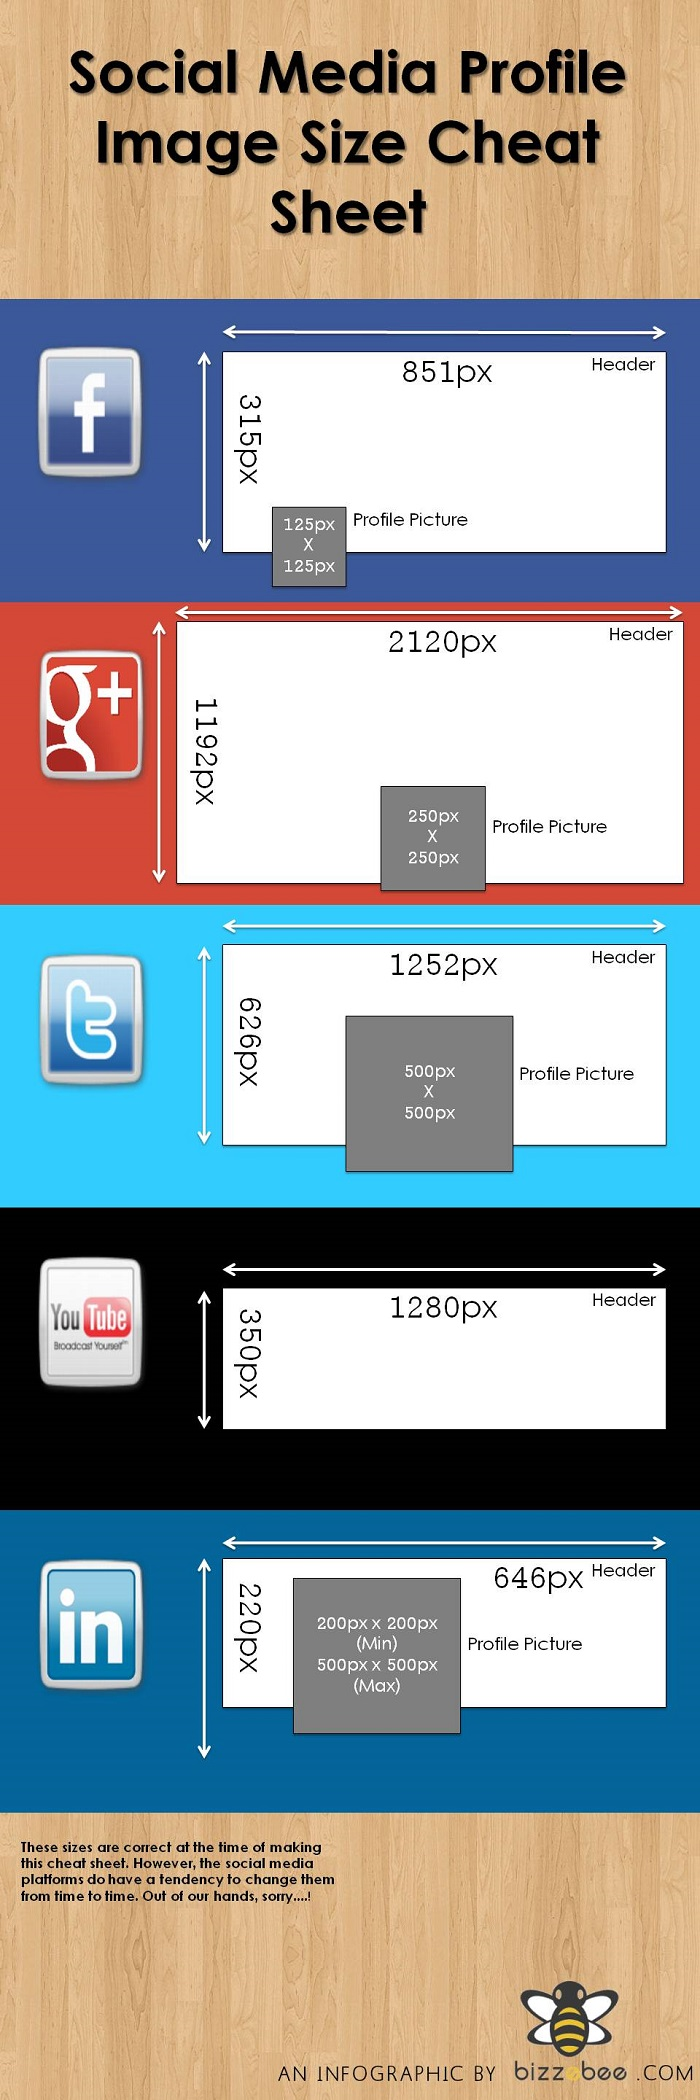 timeline cover design infographic